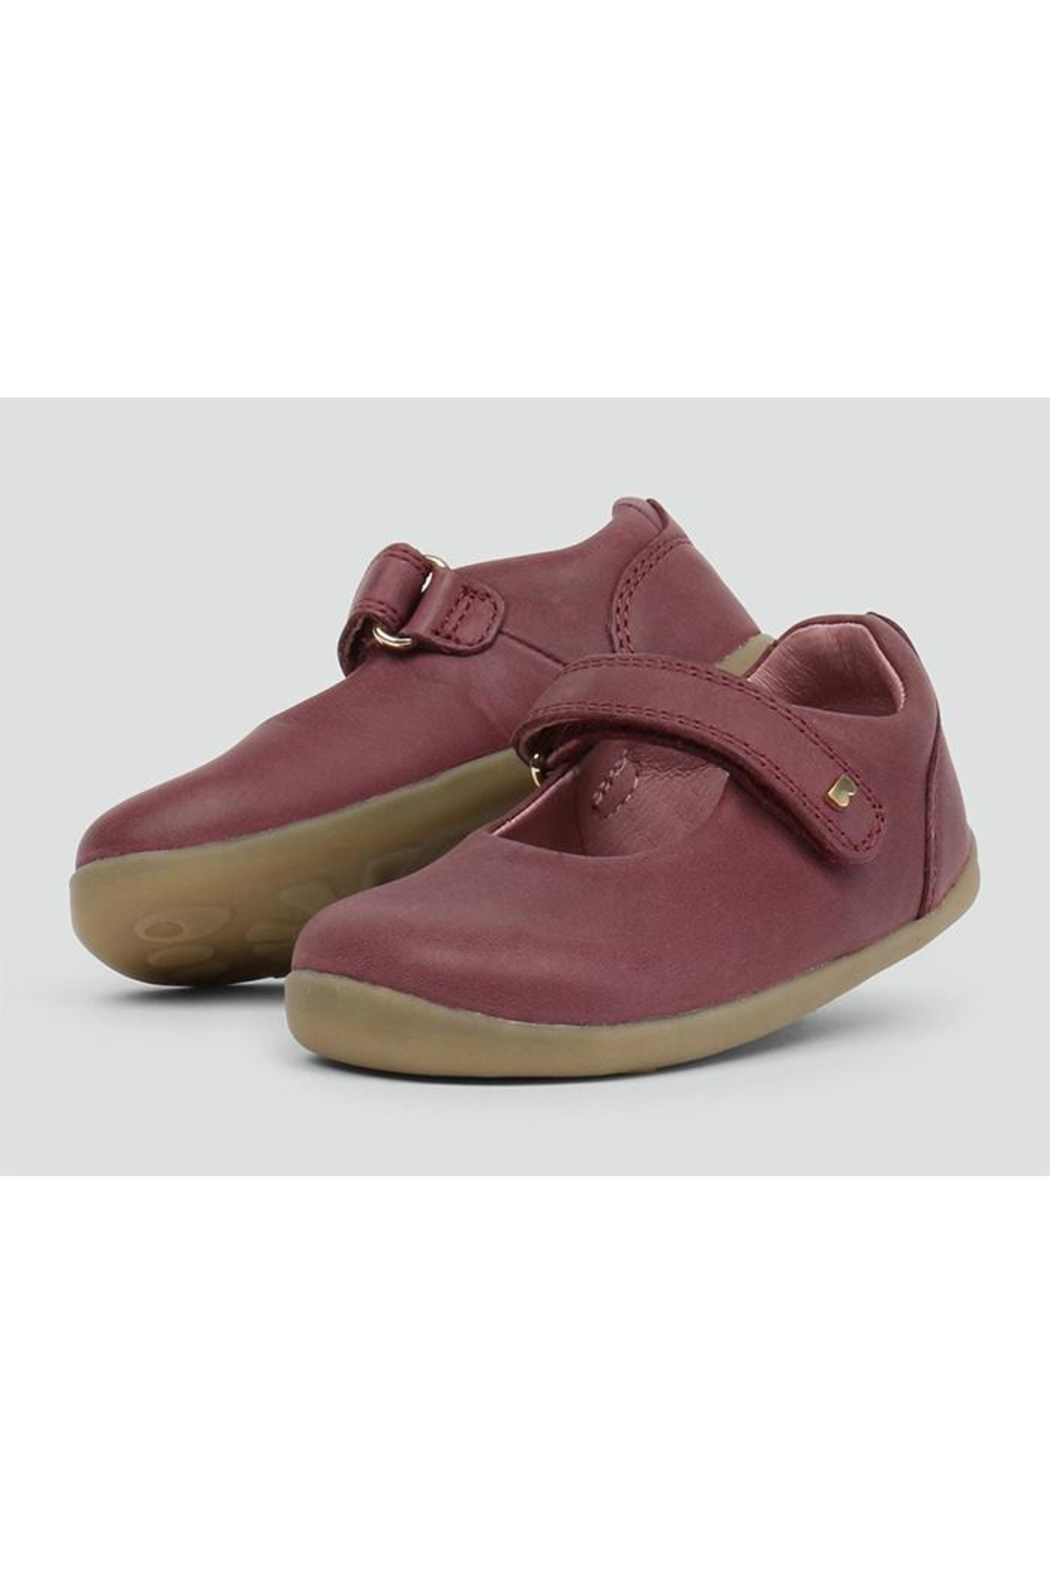 Bobux Delight-Plum Mary-Jane Shoes - Main Image